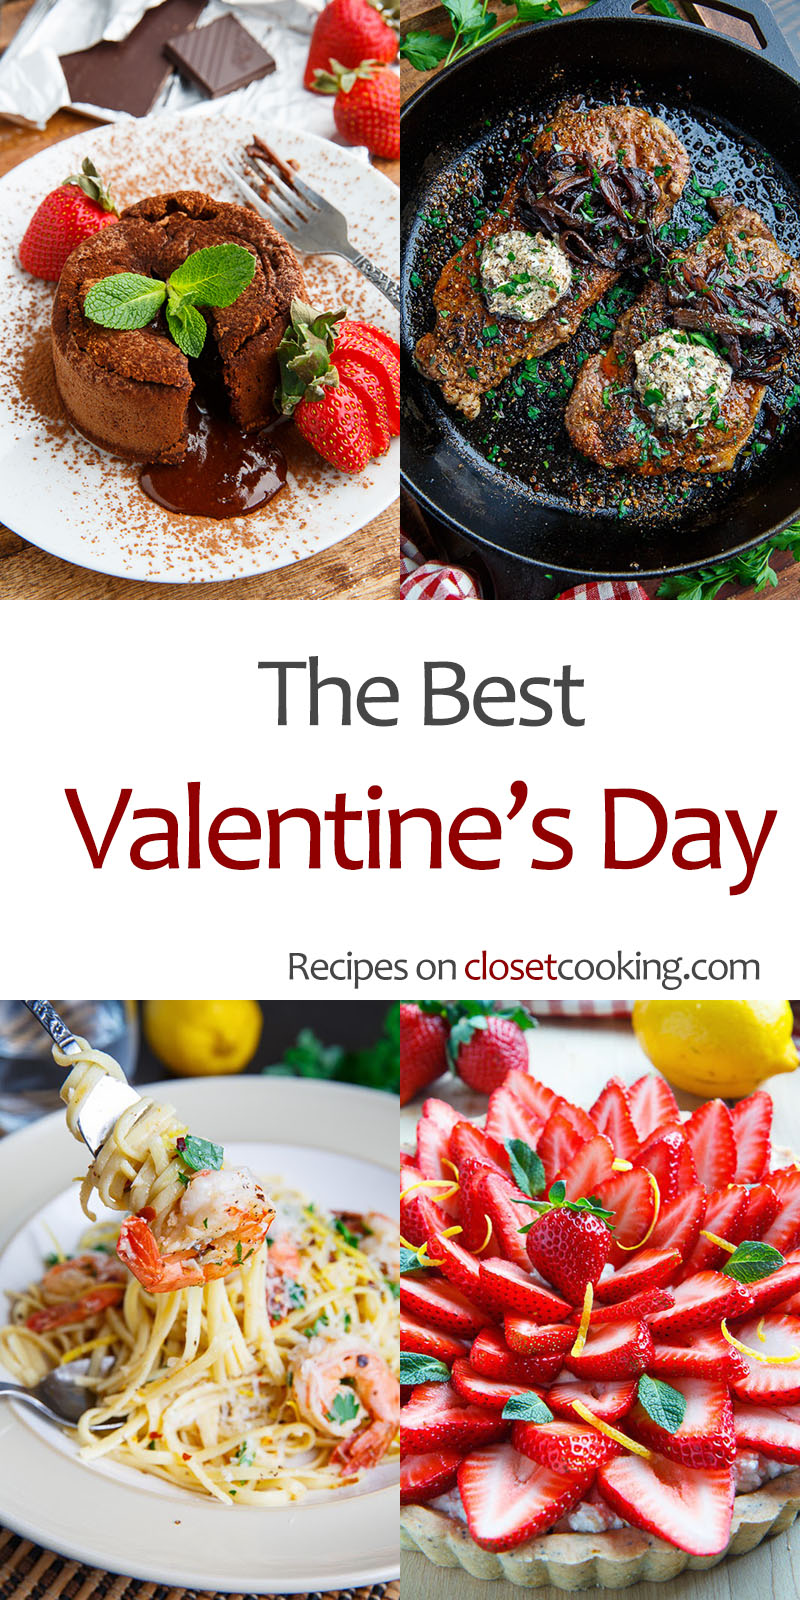 70 Valentine's Day Recipes